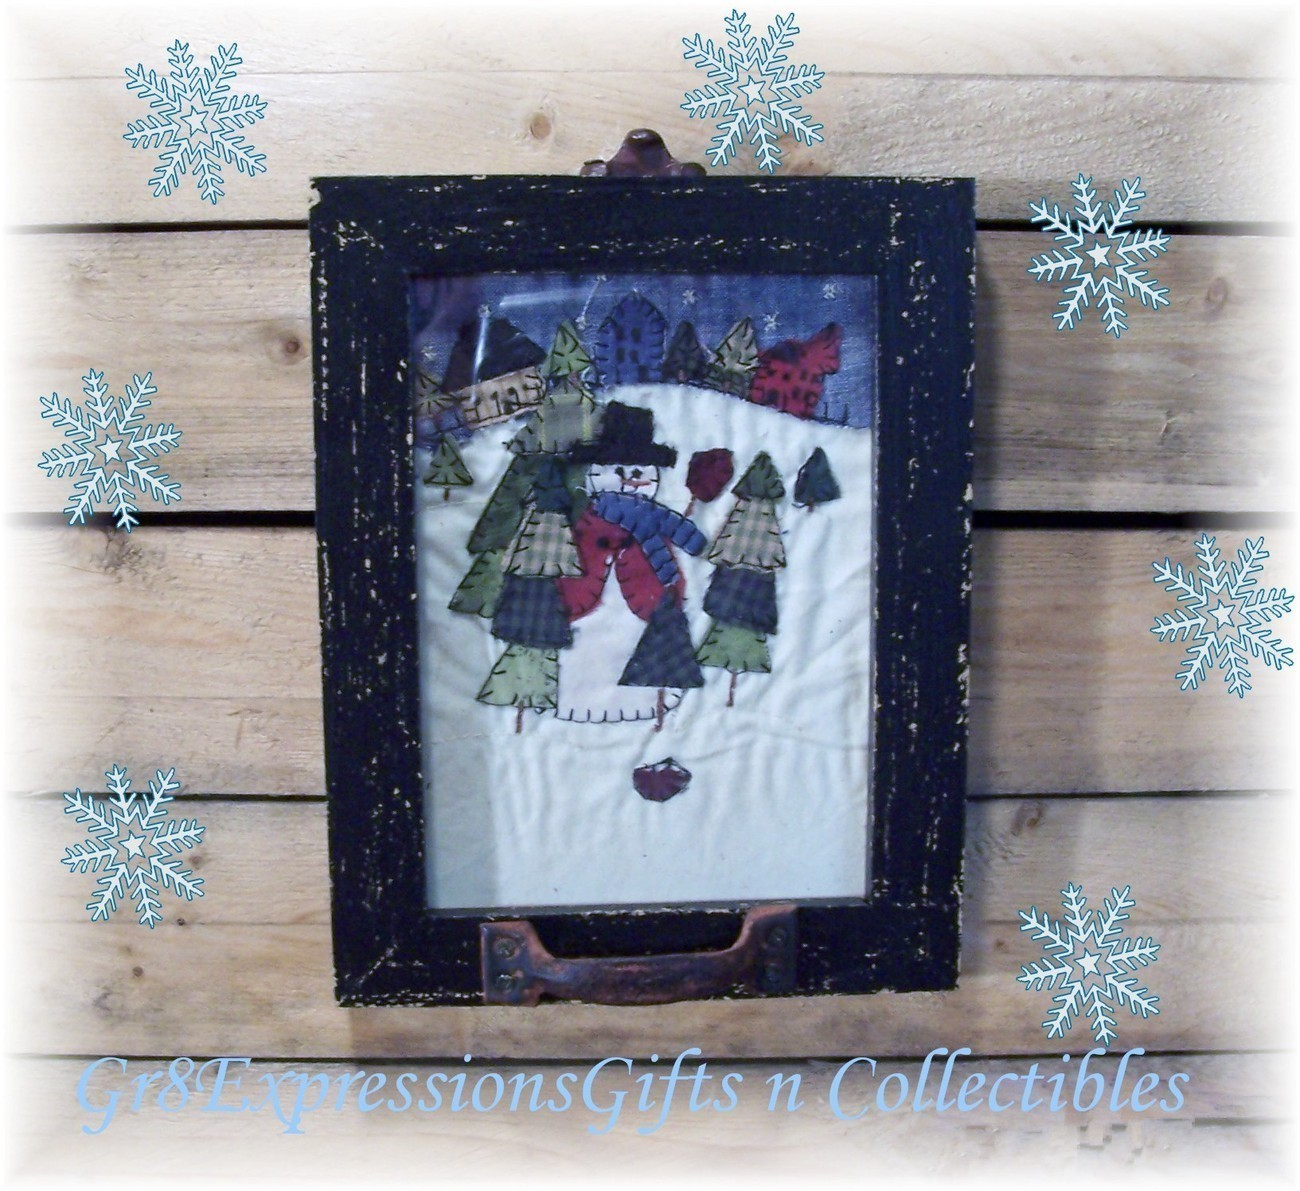 Stitched snowman window frame picture